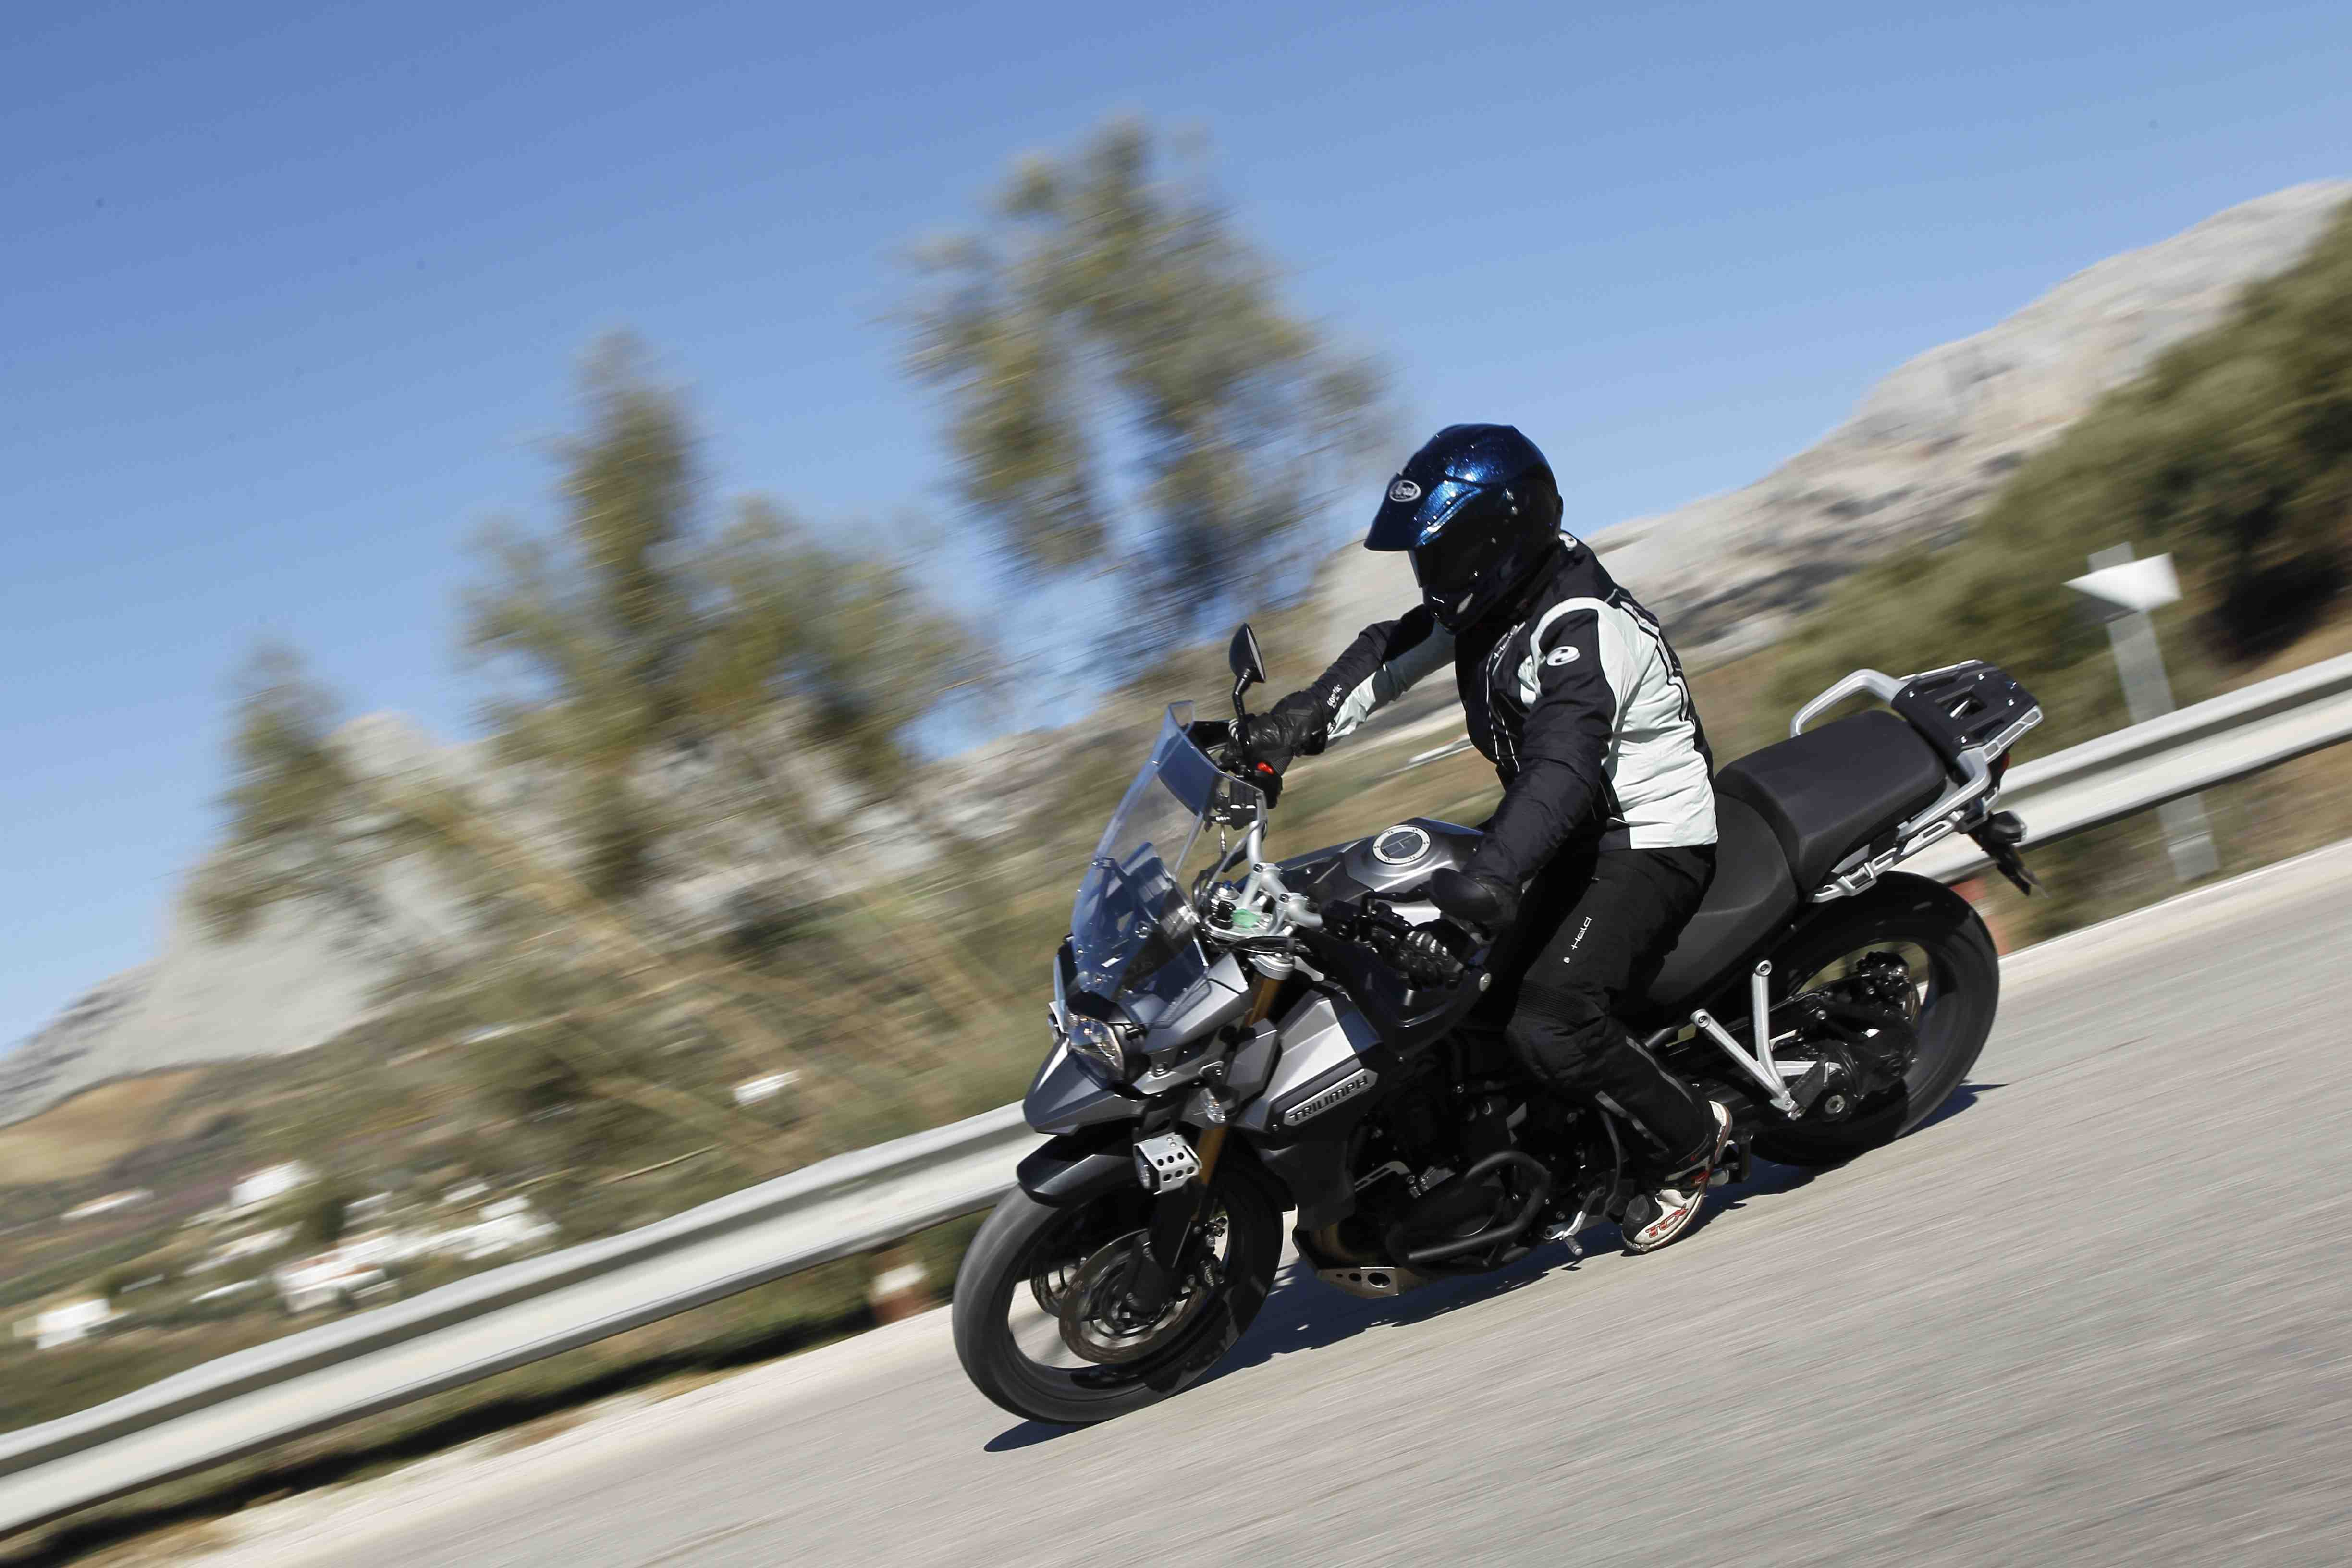 First Ride: Triumph Tiger Explorer 1200 review